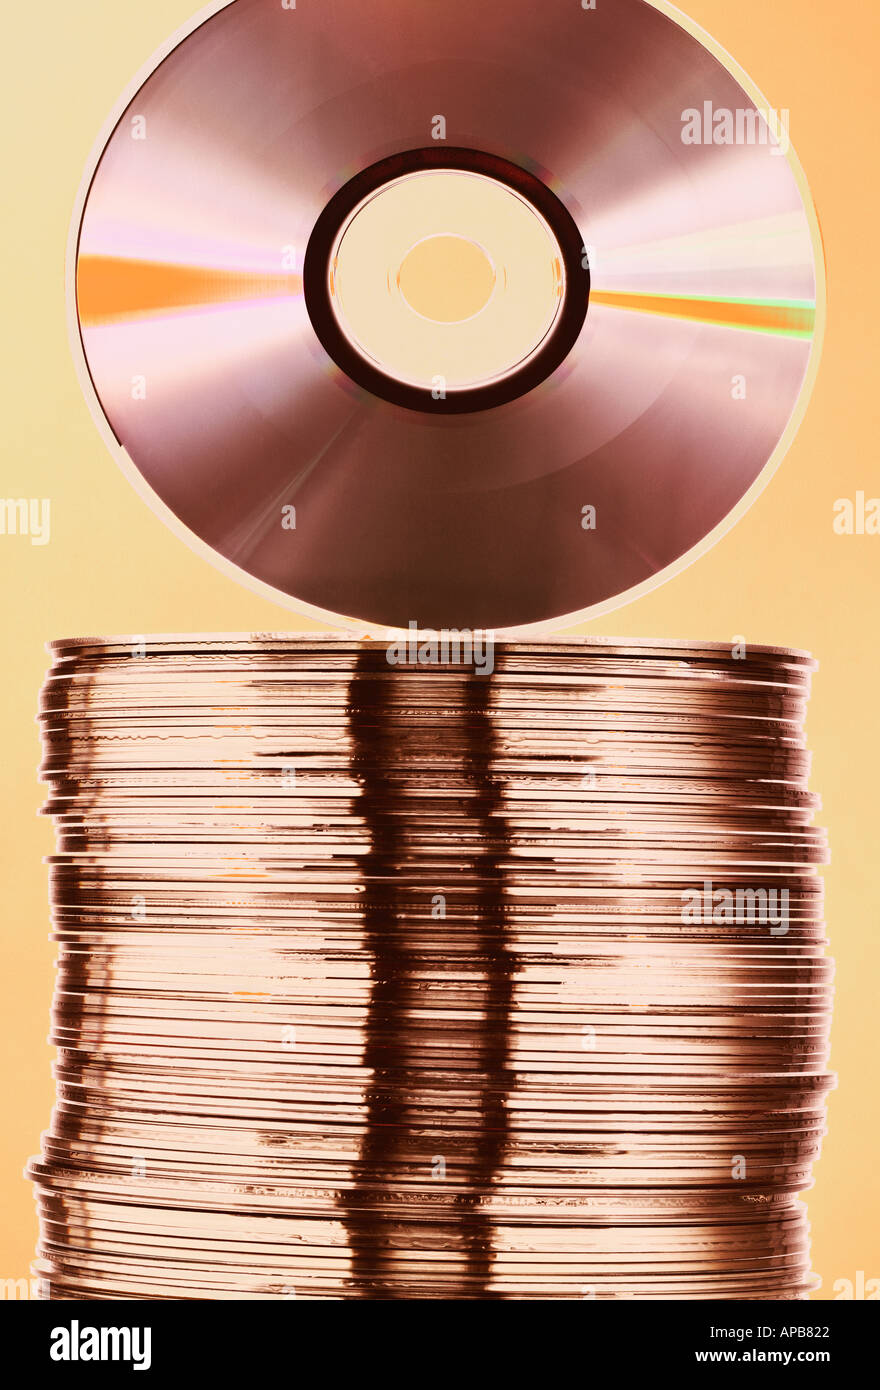 CD on top of stack of CD s - Stock Image